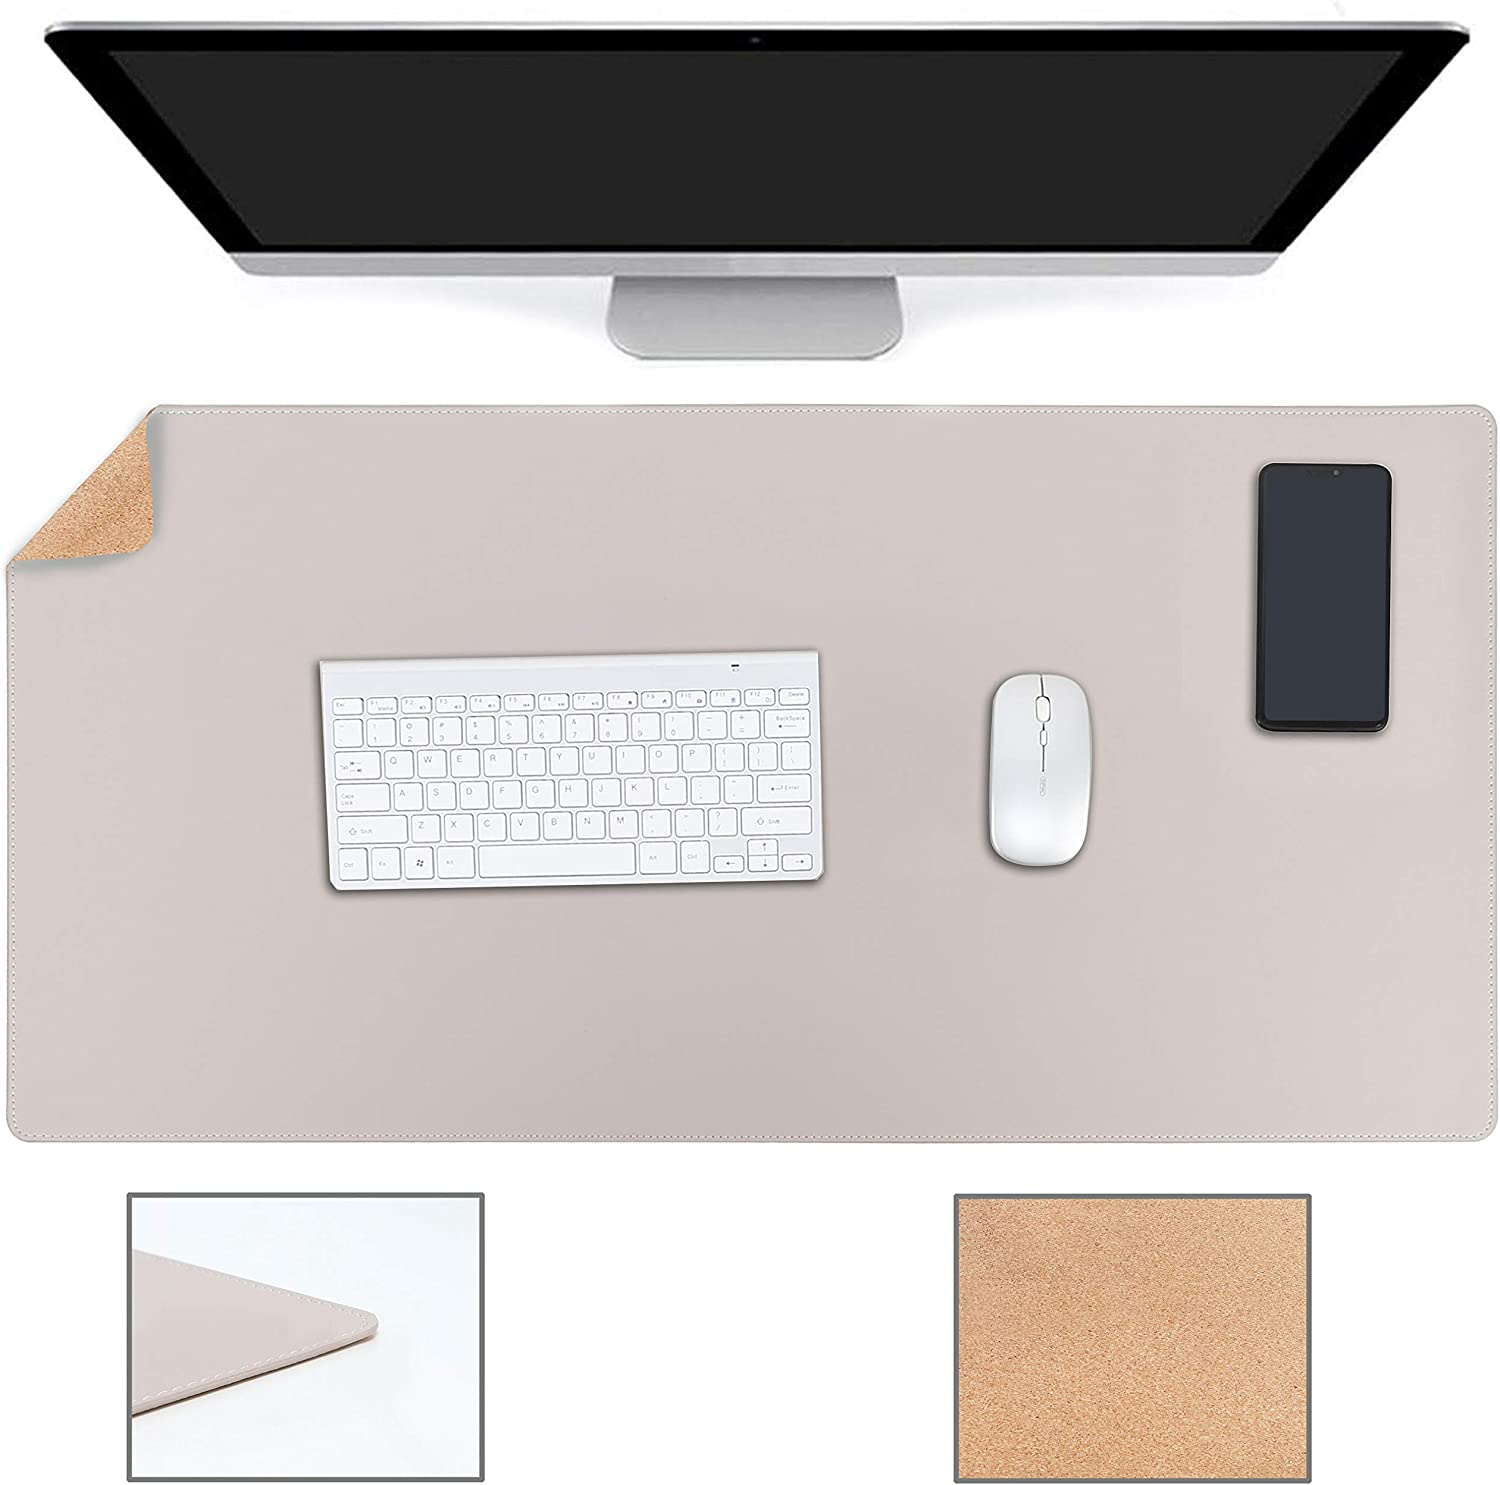 """YSAGi Multifunctional Office Desk Pad, Ultra Thin Waterproof PU Leather Mouse Pad, Dual Use Desk Writing Mat for Office/Home (35.4"""" x 17"""", Cork+Grey)"""